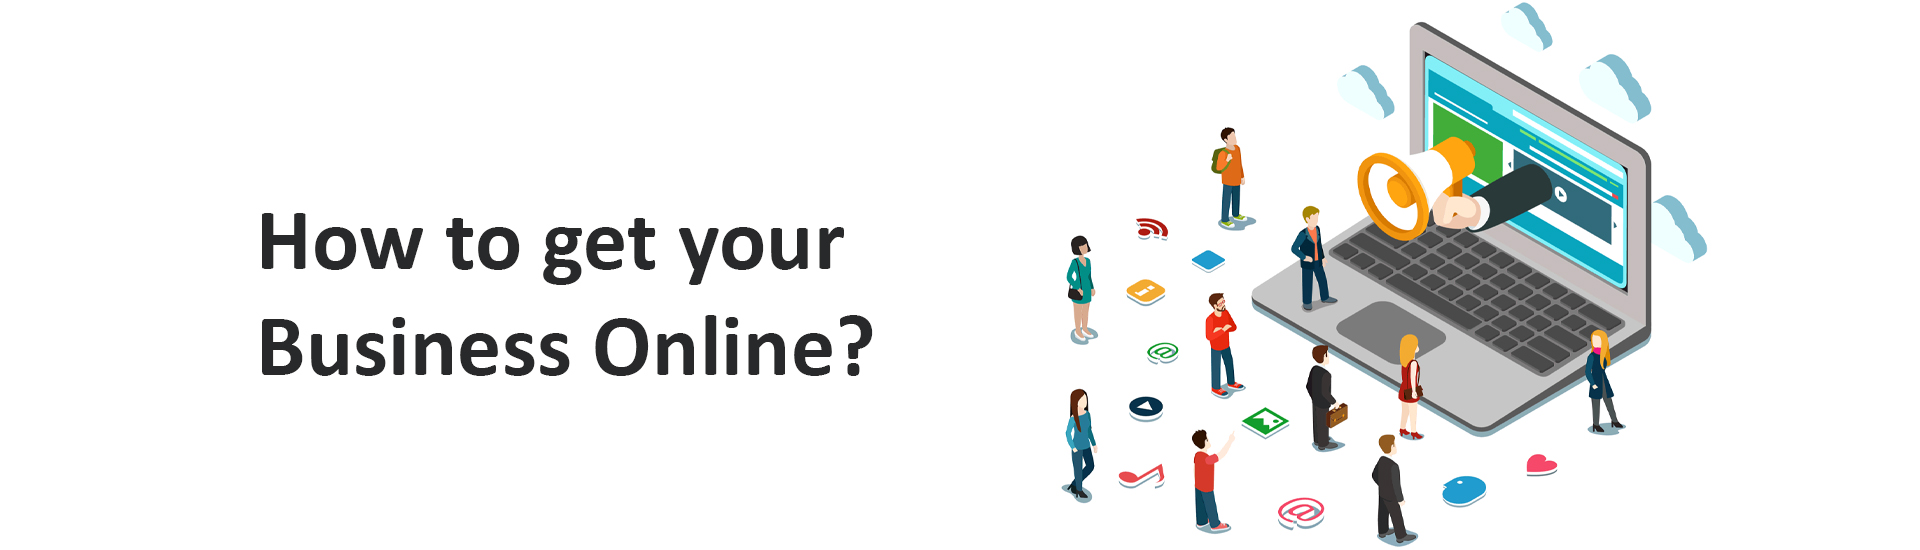 How to get your Business Online? - Digital Marketing Services - Premware